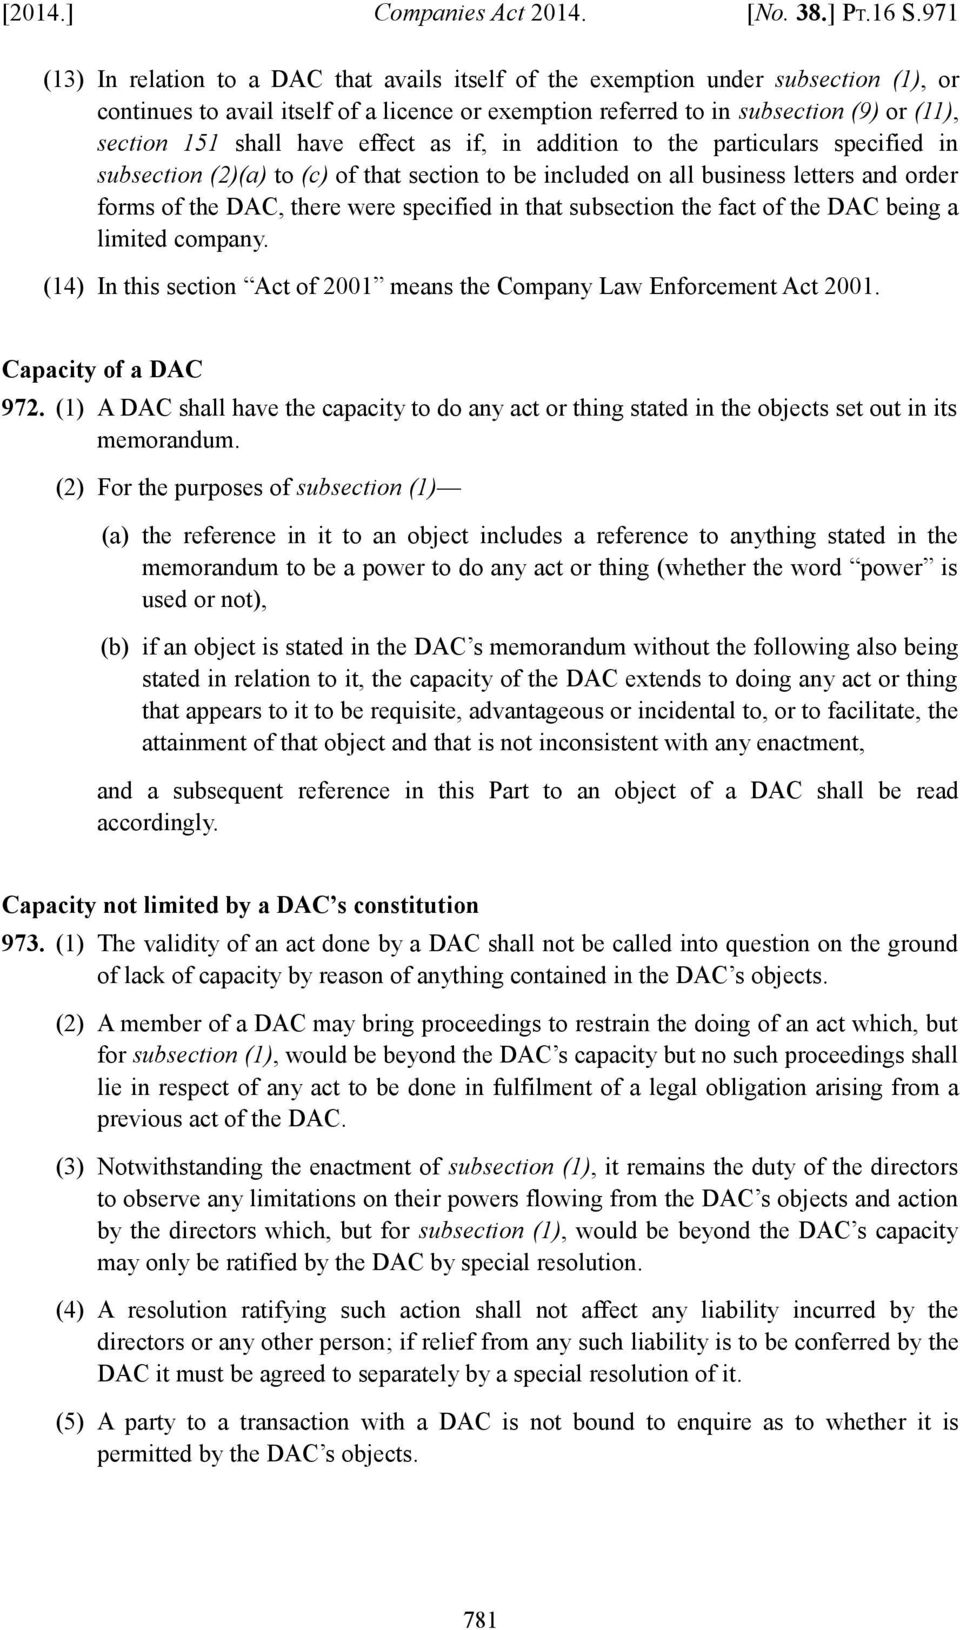 have effect as if, in addition to the particulars specified in subsection (2)(a) to (c) of that section to be included on all business letters and order forms of the DAC, there were specified in that